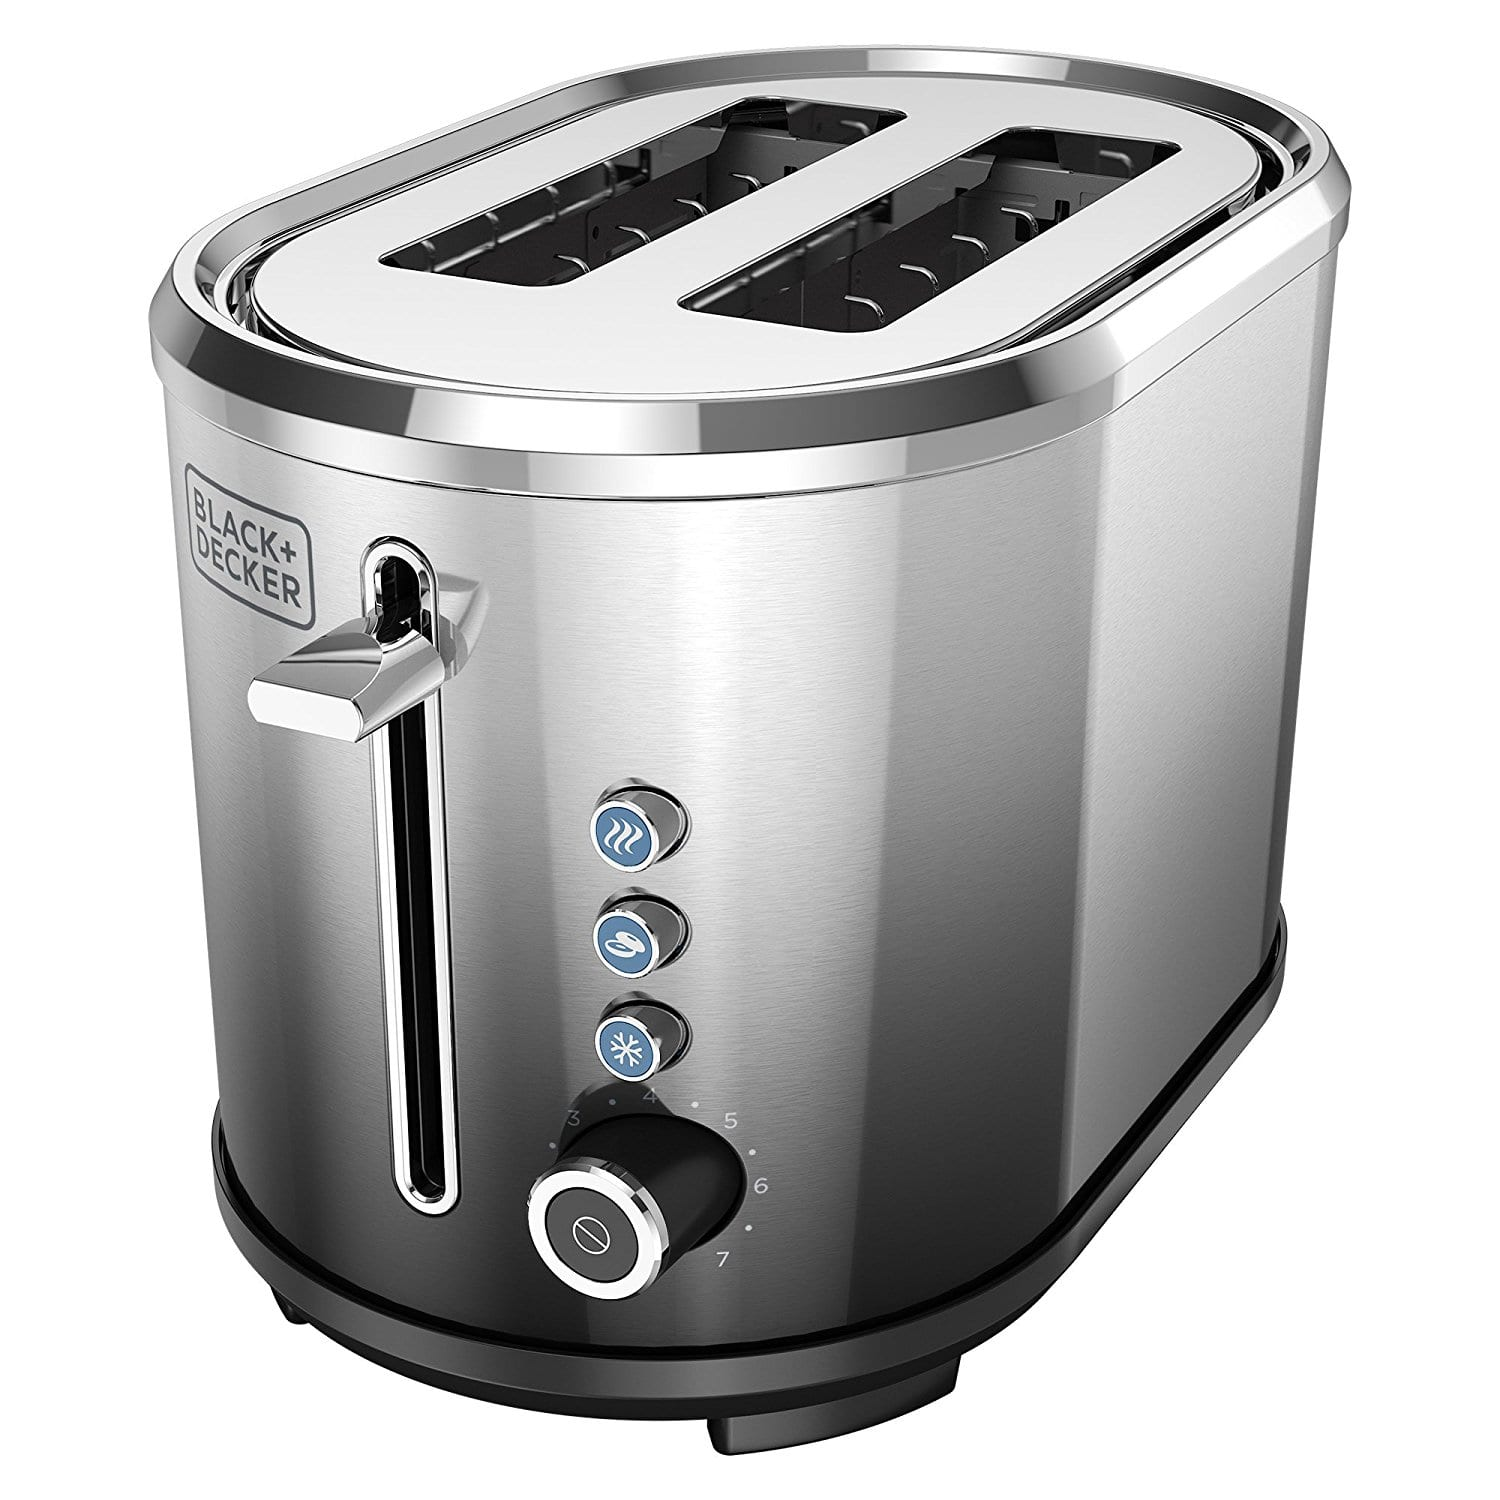 stores slot almond prestige toasters slice wide extra toaster uk it traditional this is